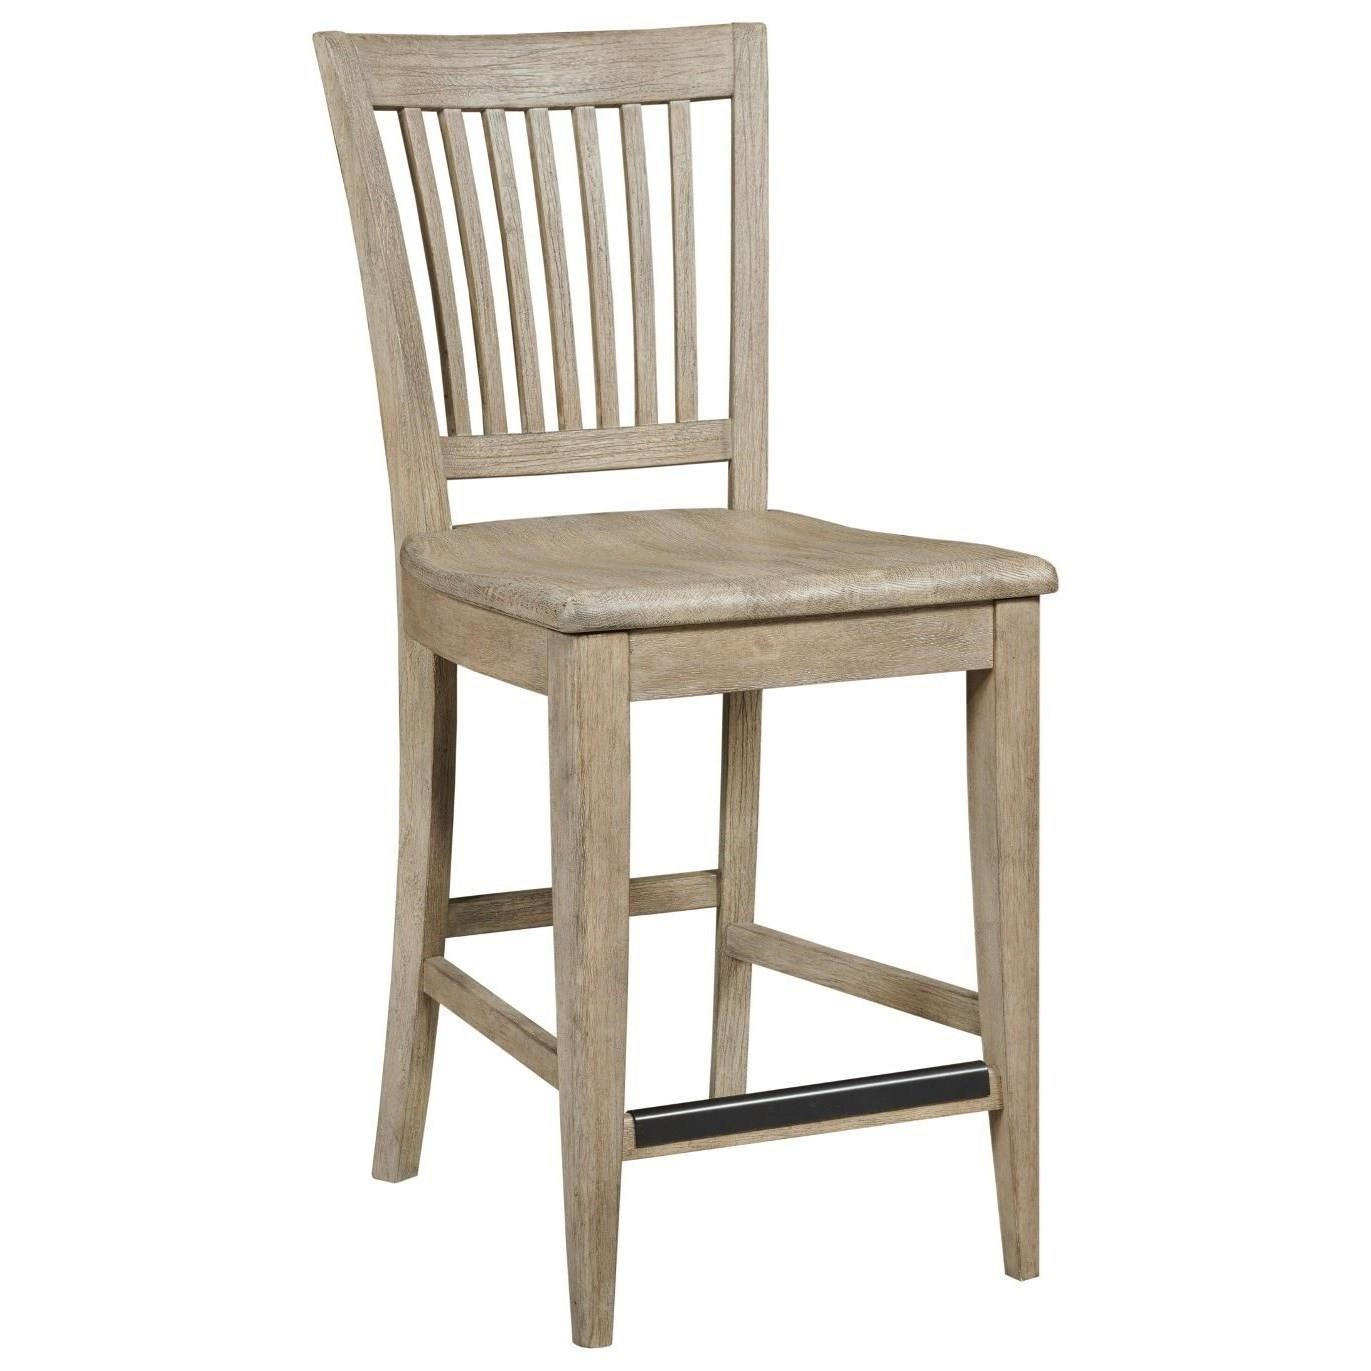 Solid Wood Counter Height Slat Back Chair